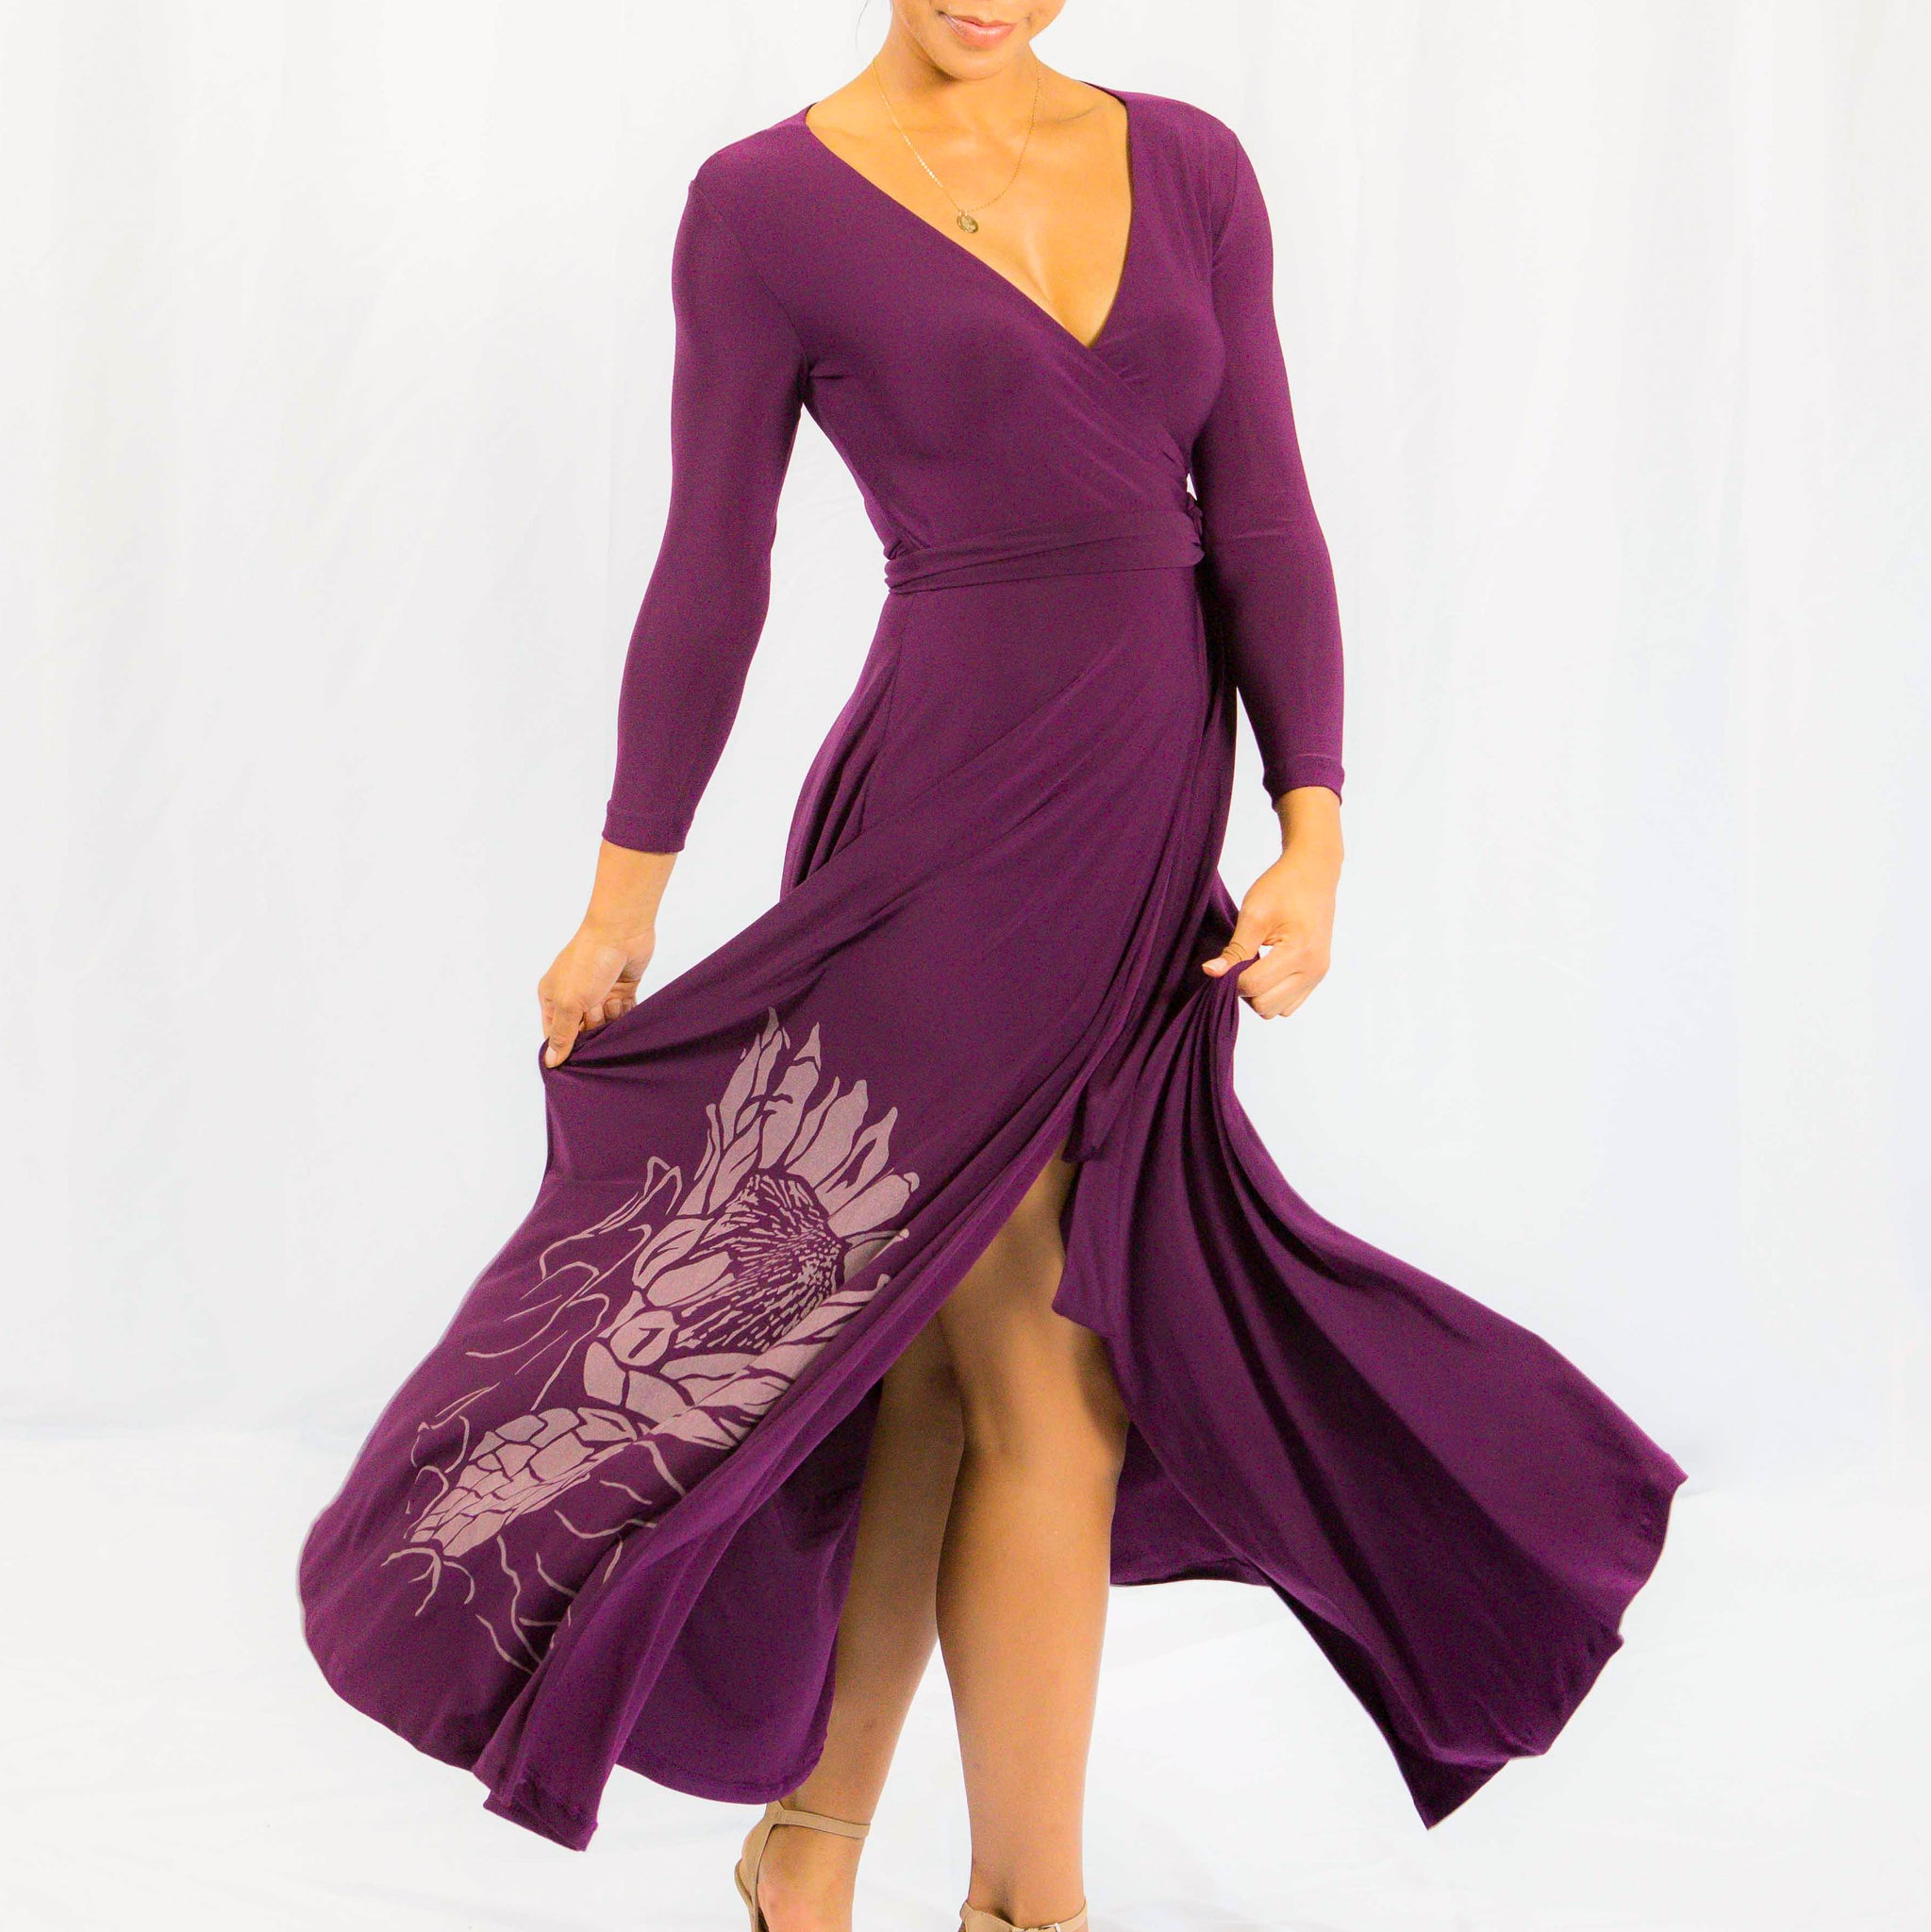 Women's Dress: Maxi Wrap Dress, Protea, Purple